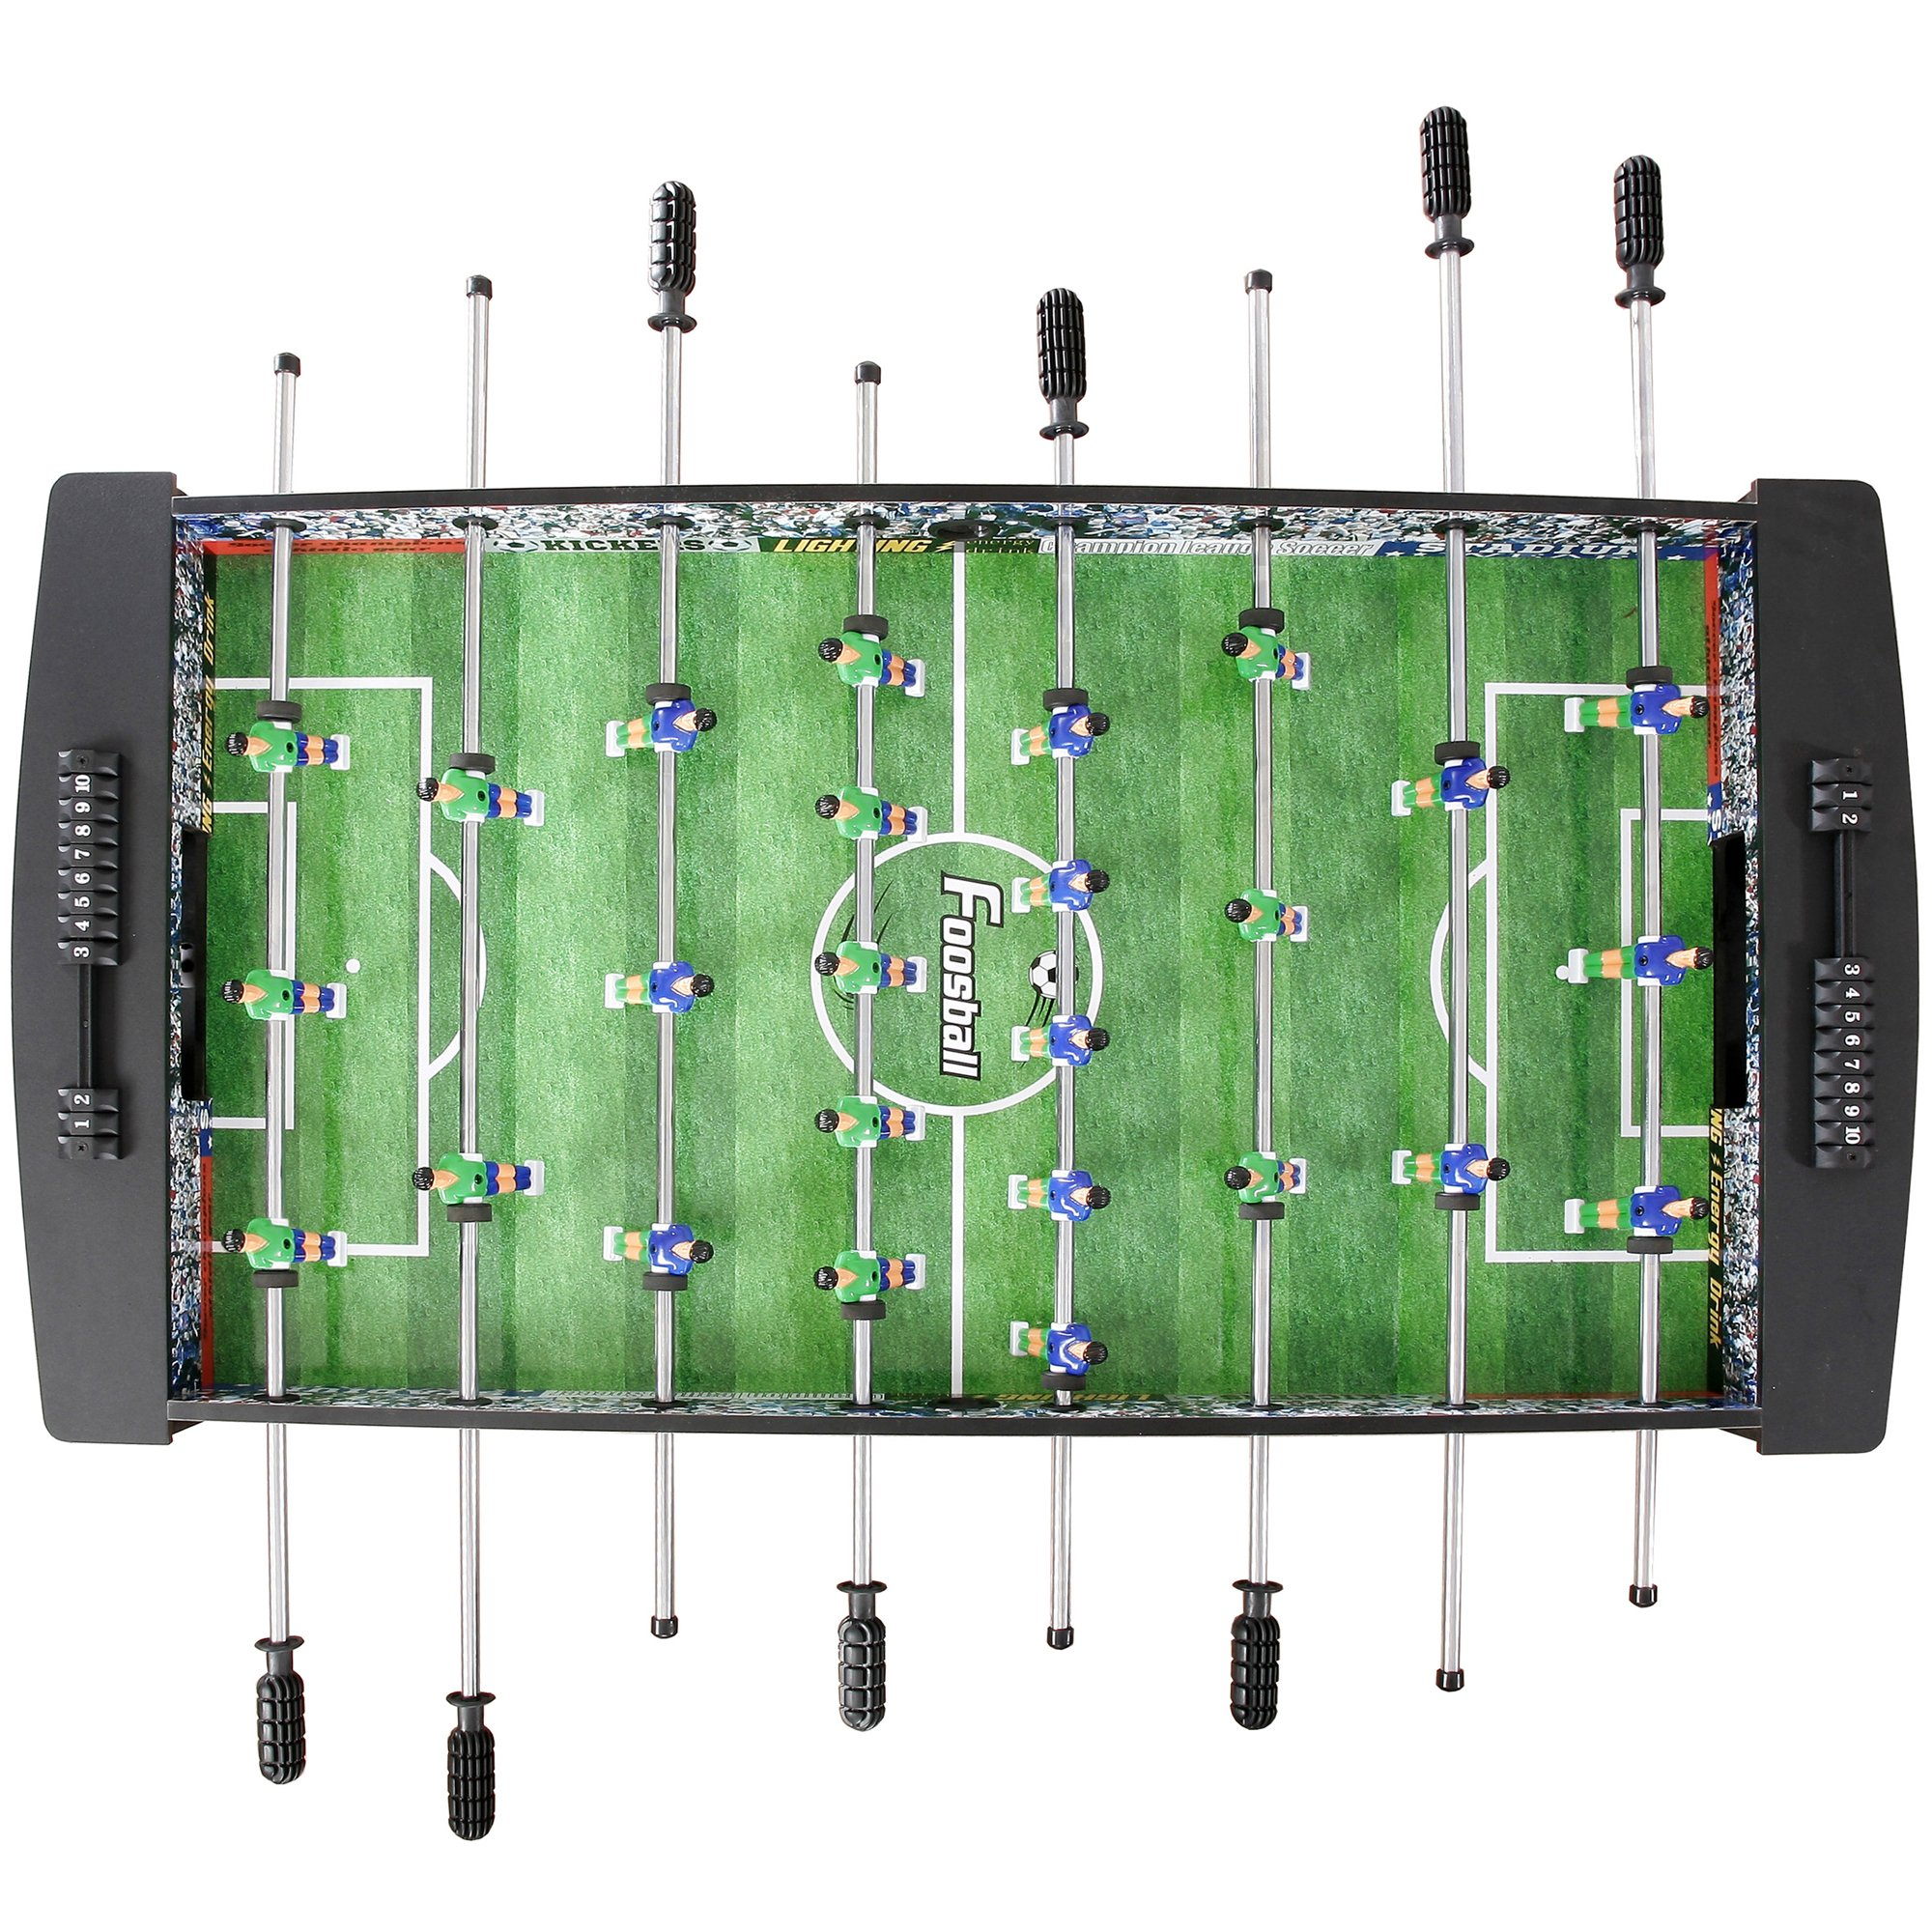 1. Hathaway Playoff 4' Foosball Table